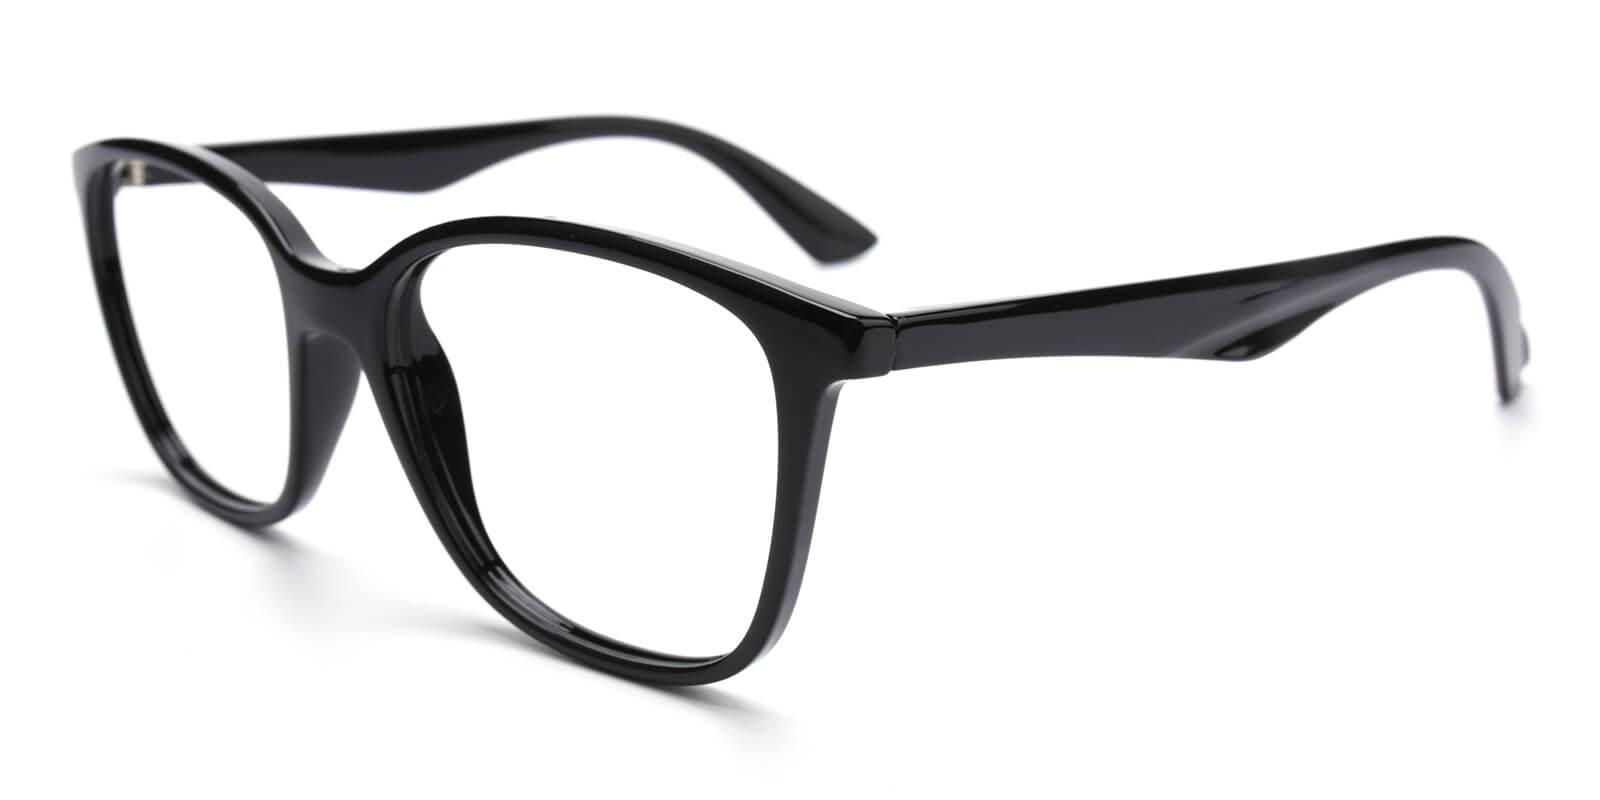 Jason-Black-Square-TR-Eyeglasses-additional1